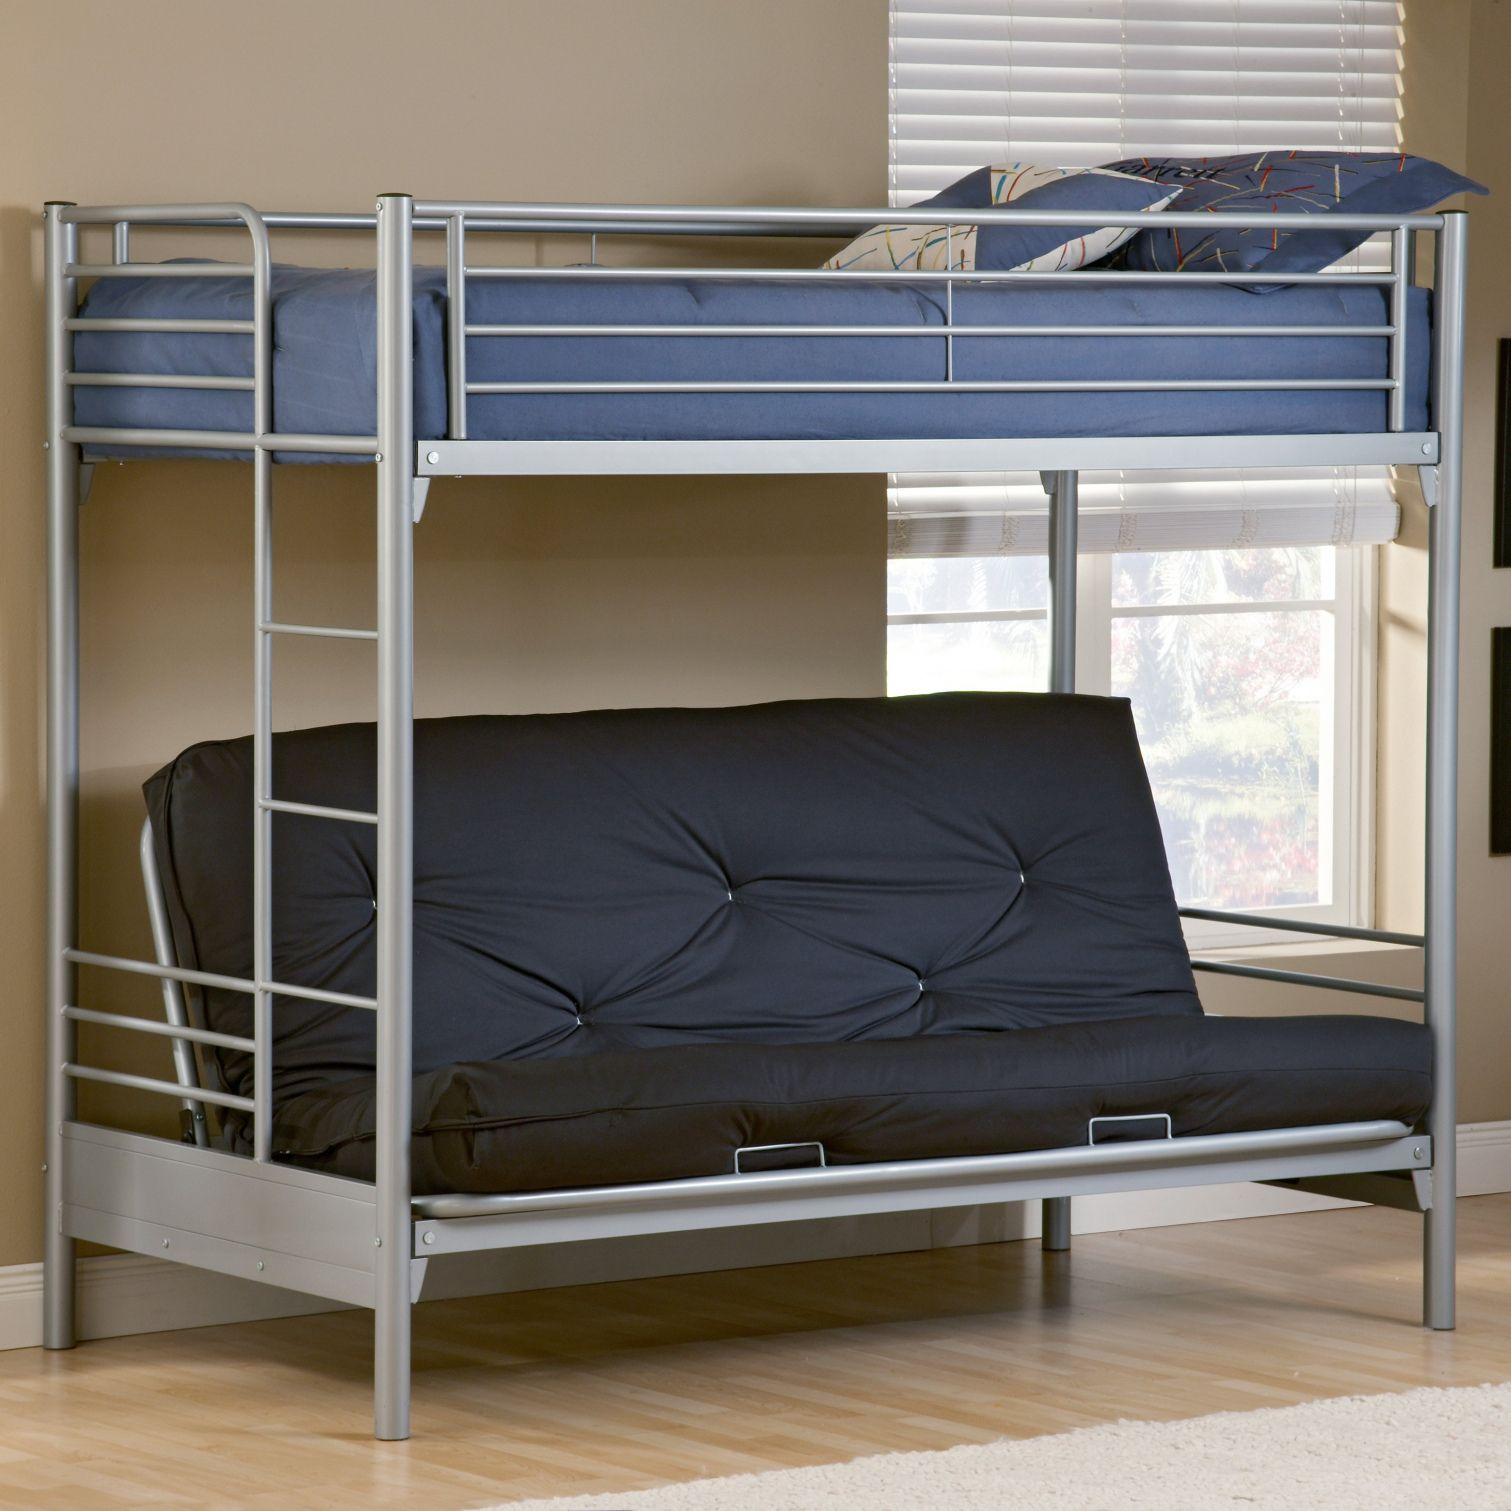 White Futon Bunk Bed Interior House Paint Colors Check More At Http Billiepiperfan Com